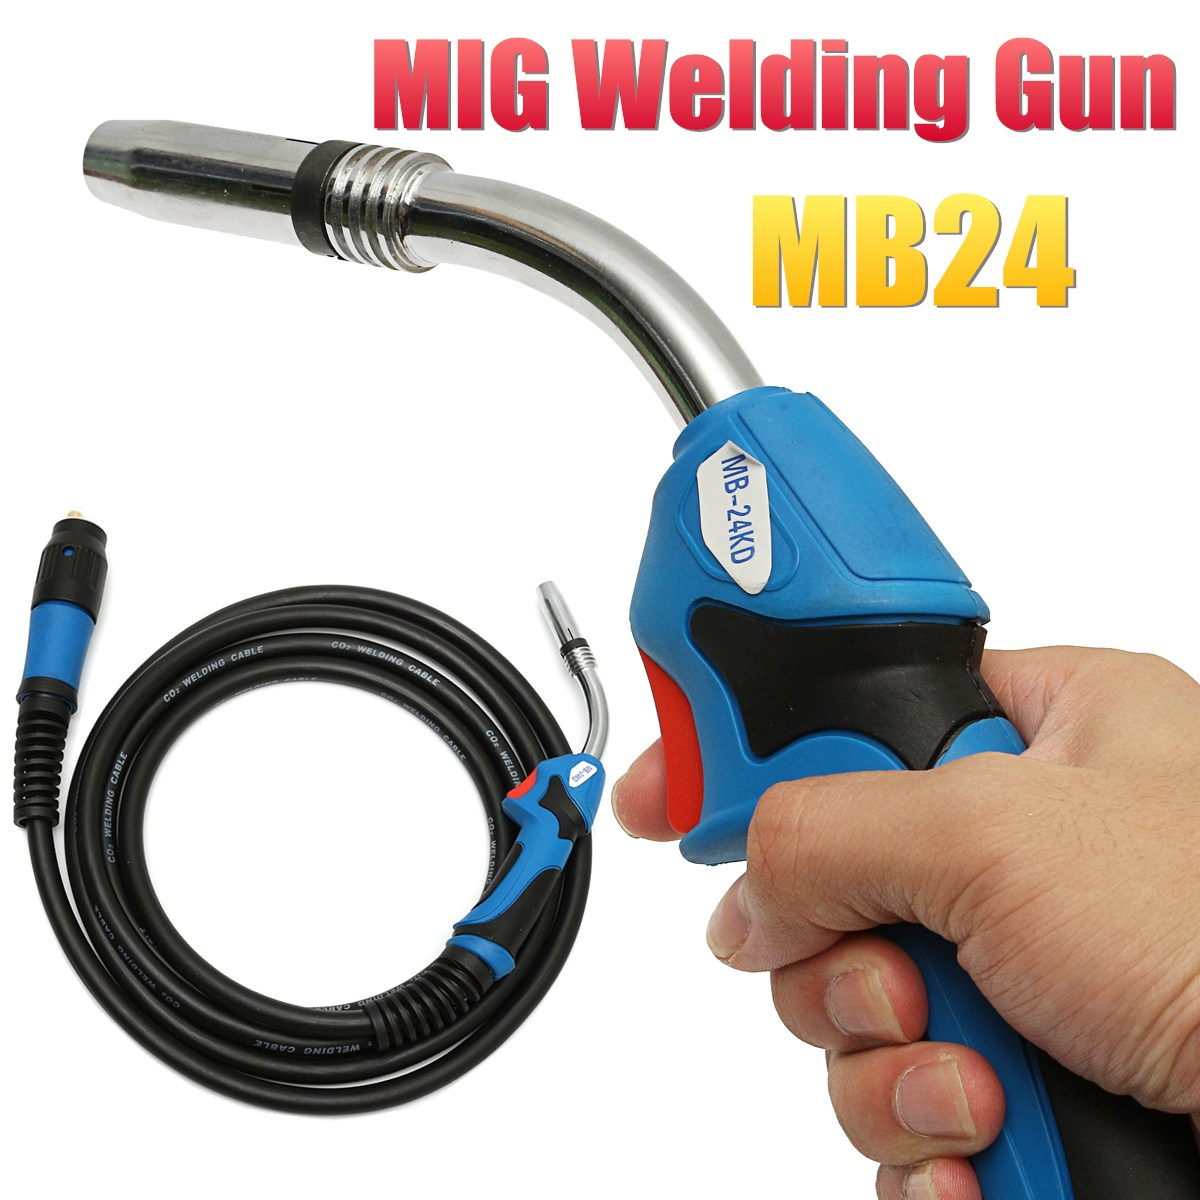 1Pcs MB24 MIG Welding Gun-Torch with 5 Meter Length Lead Electric Welder Torch Stinger Parts josette page 4